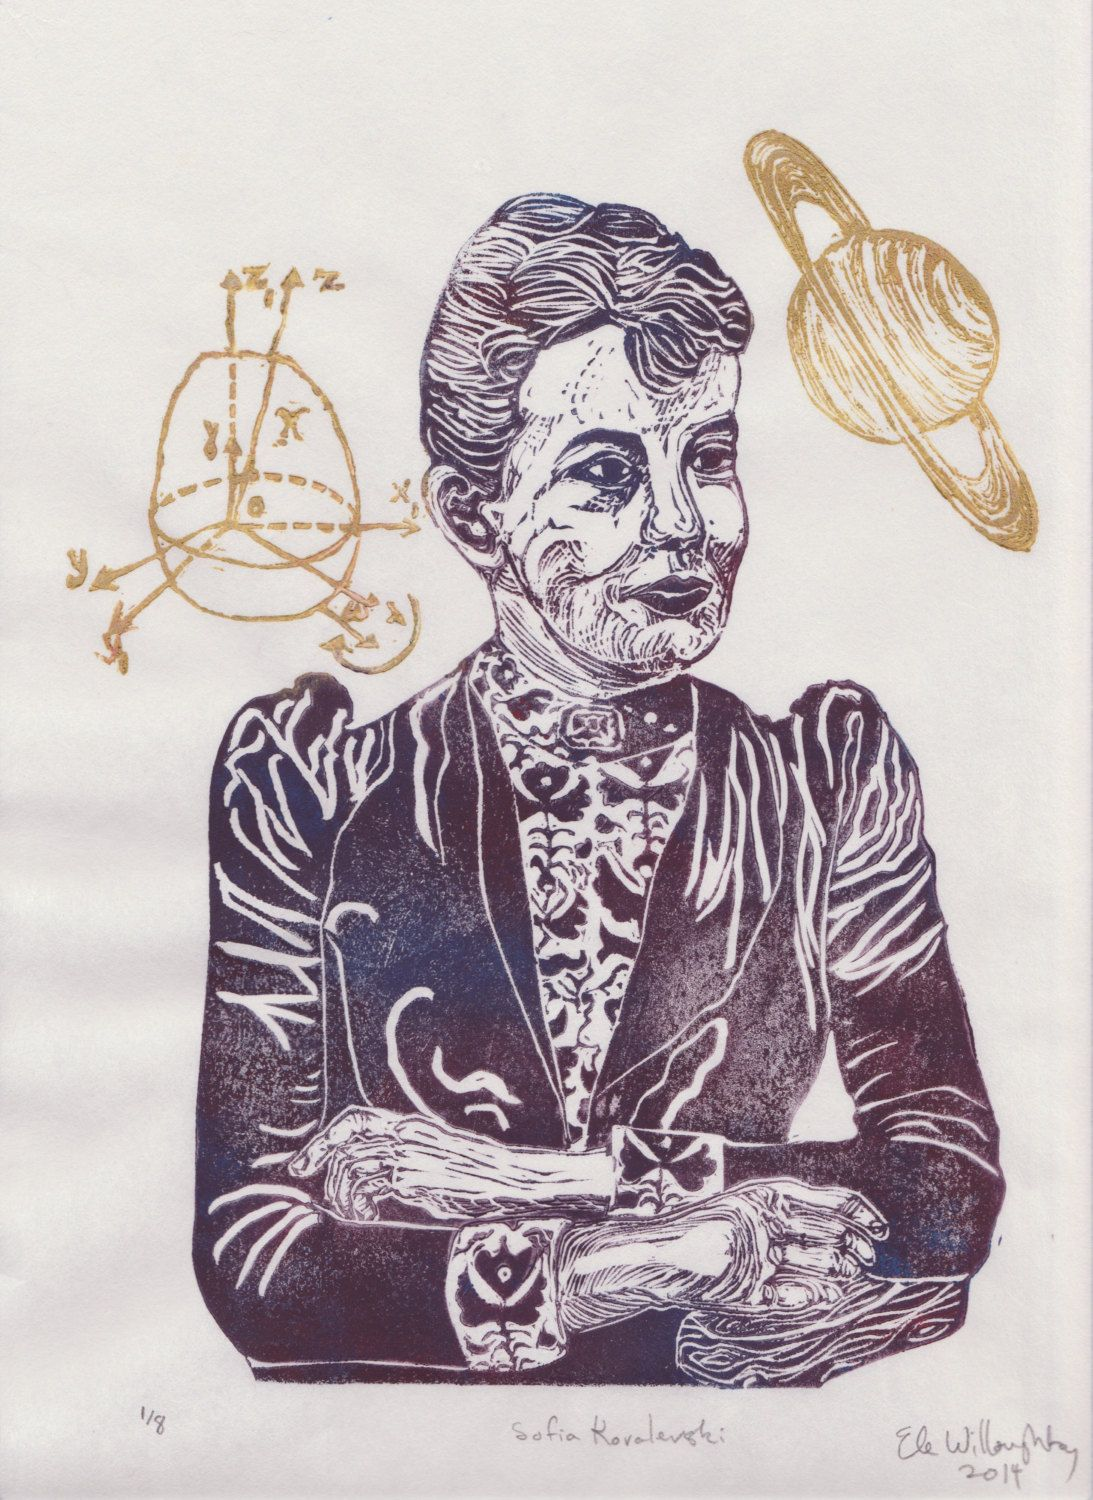 New to minouette on Etsy: Mathematician Sofia Kovalevski Linocut - History of Science Math & Literature Women in STEM Lino Block Portrait Print Sofia Kovalevski (39.00 USD)